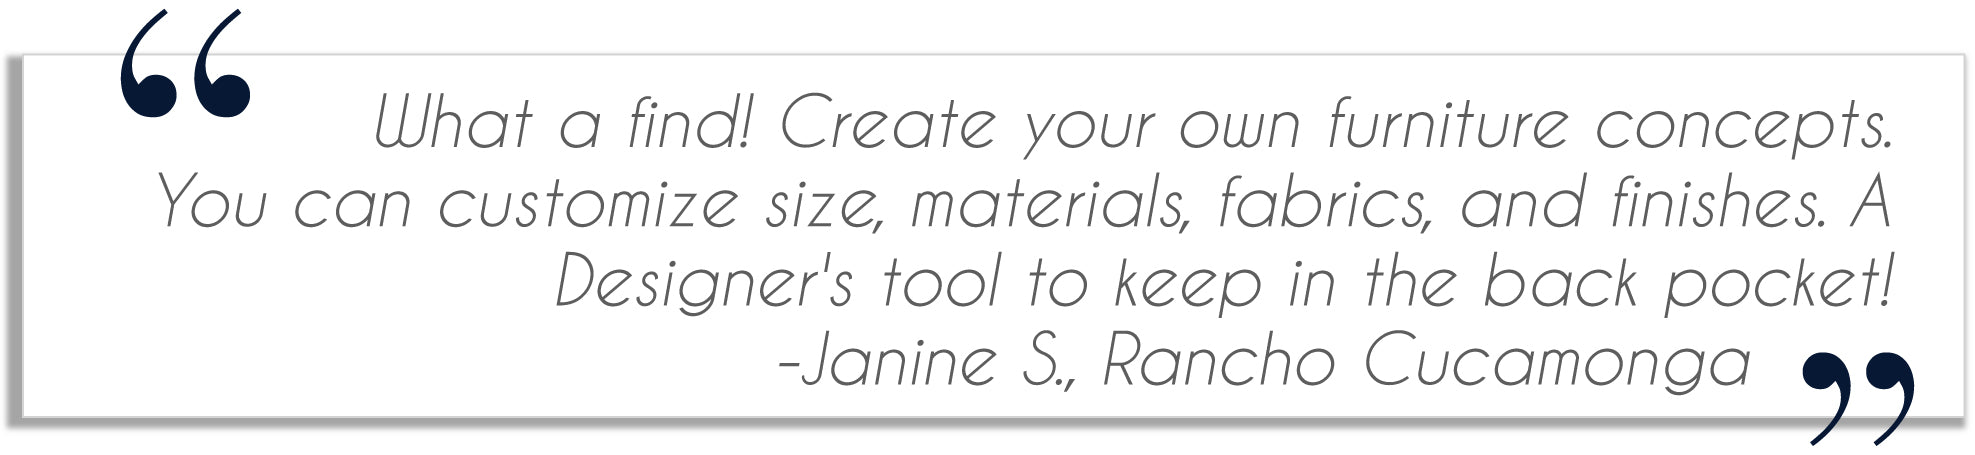 testimonial from Janinee S. in Rancho Cucamonga:  What a find. Create your own furniture concepts. You can customize size, materials, fabrics and finishes. A designers tool to keep in the back pocket!